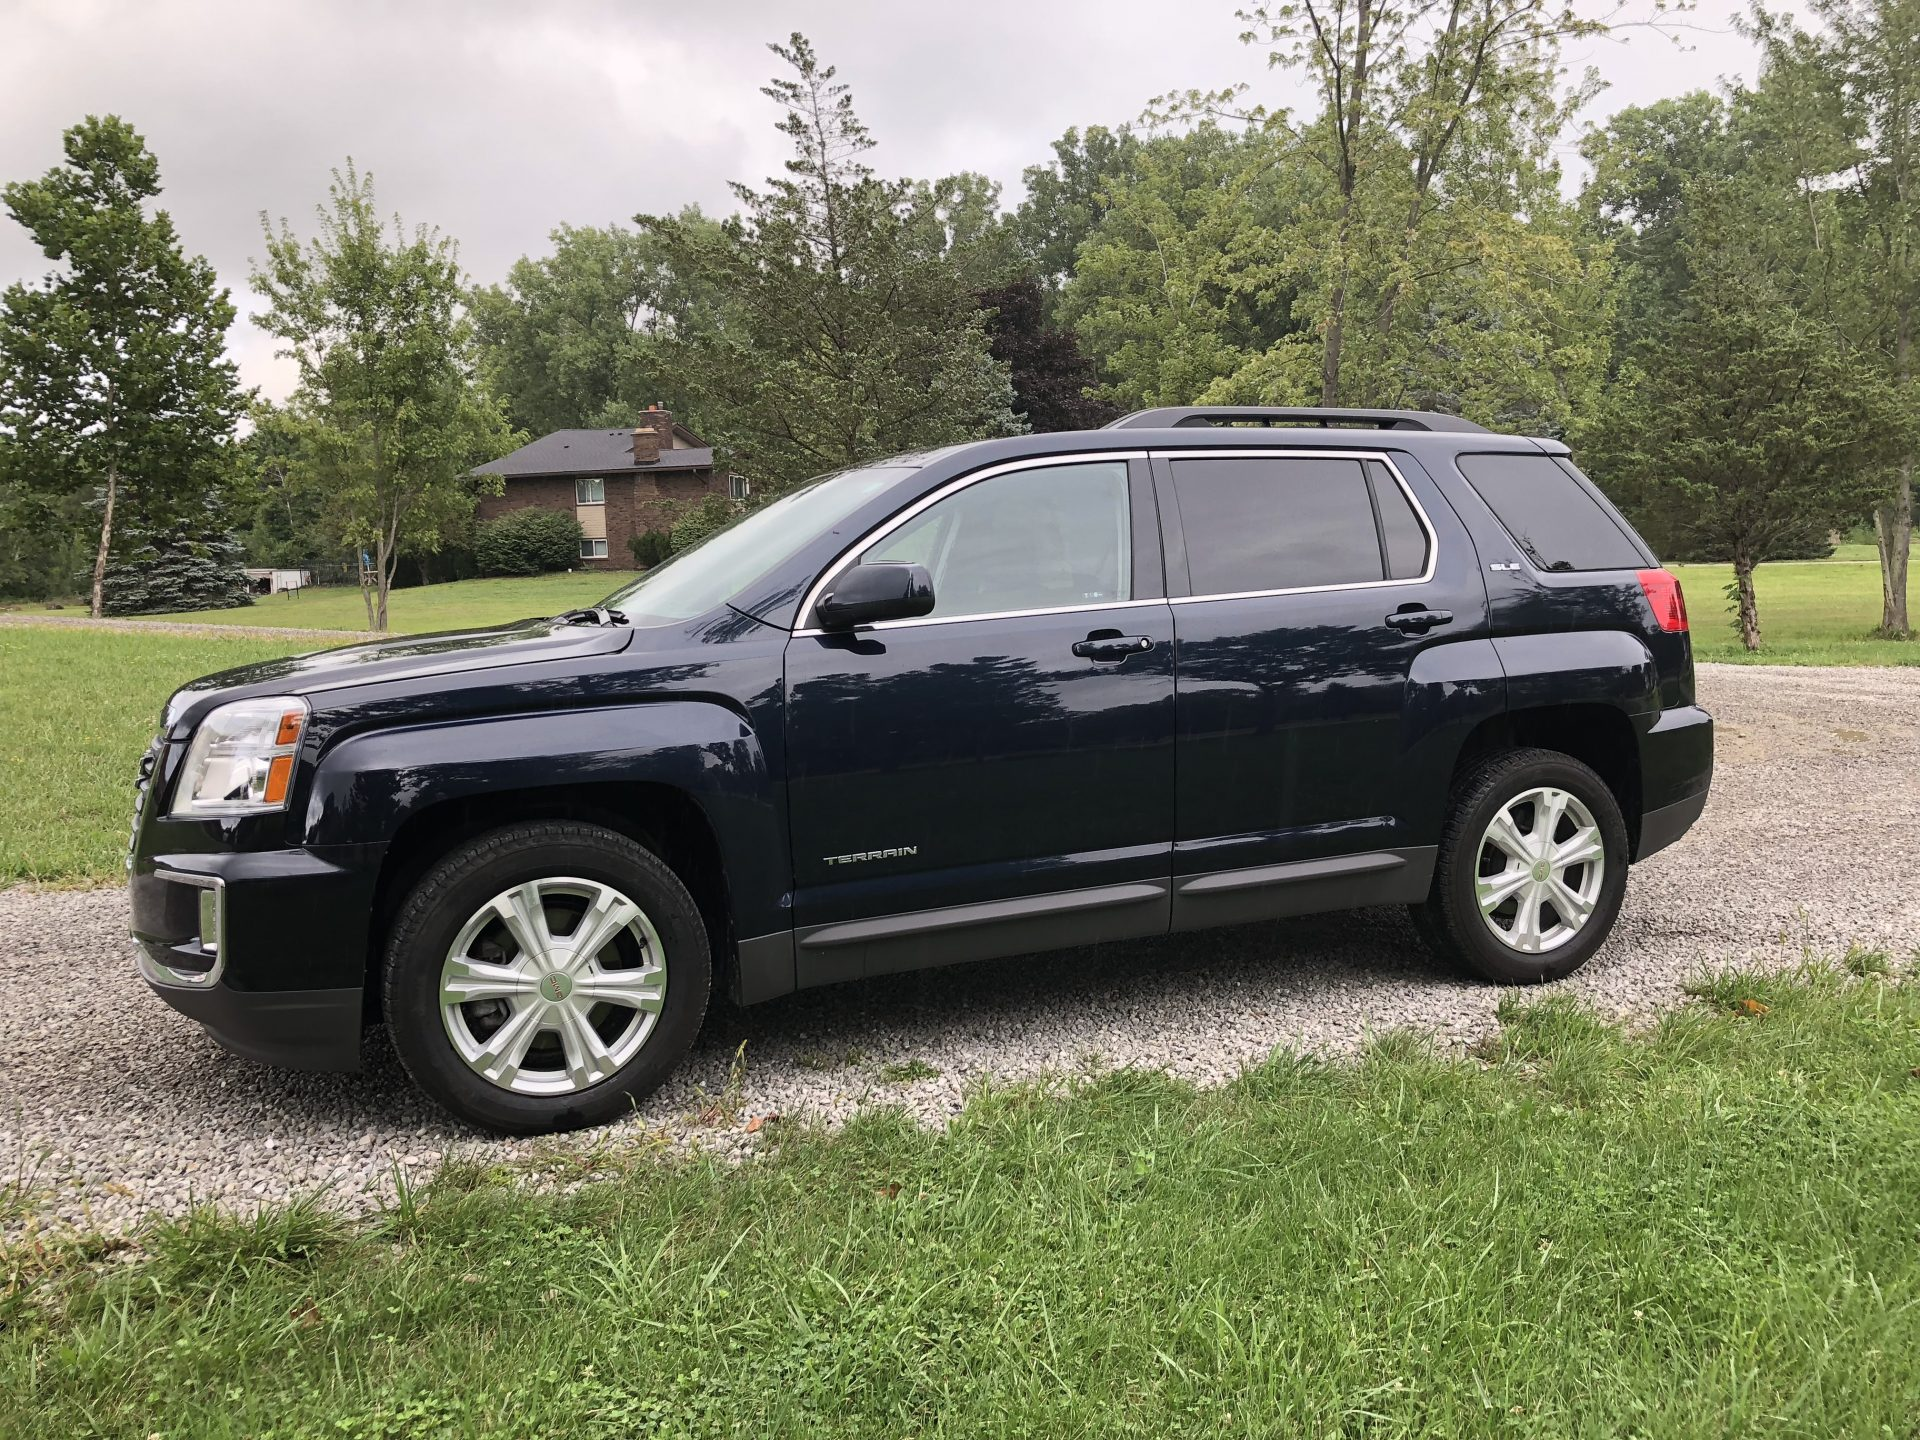 2017 gmc terrain fwd sle buds auto used cars for sale in michigan buds auto used cars. Black Bedroom Furniture Sets. Home Design Ideas